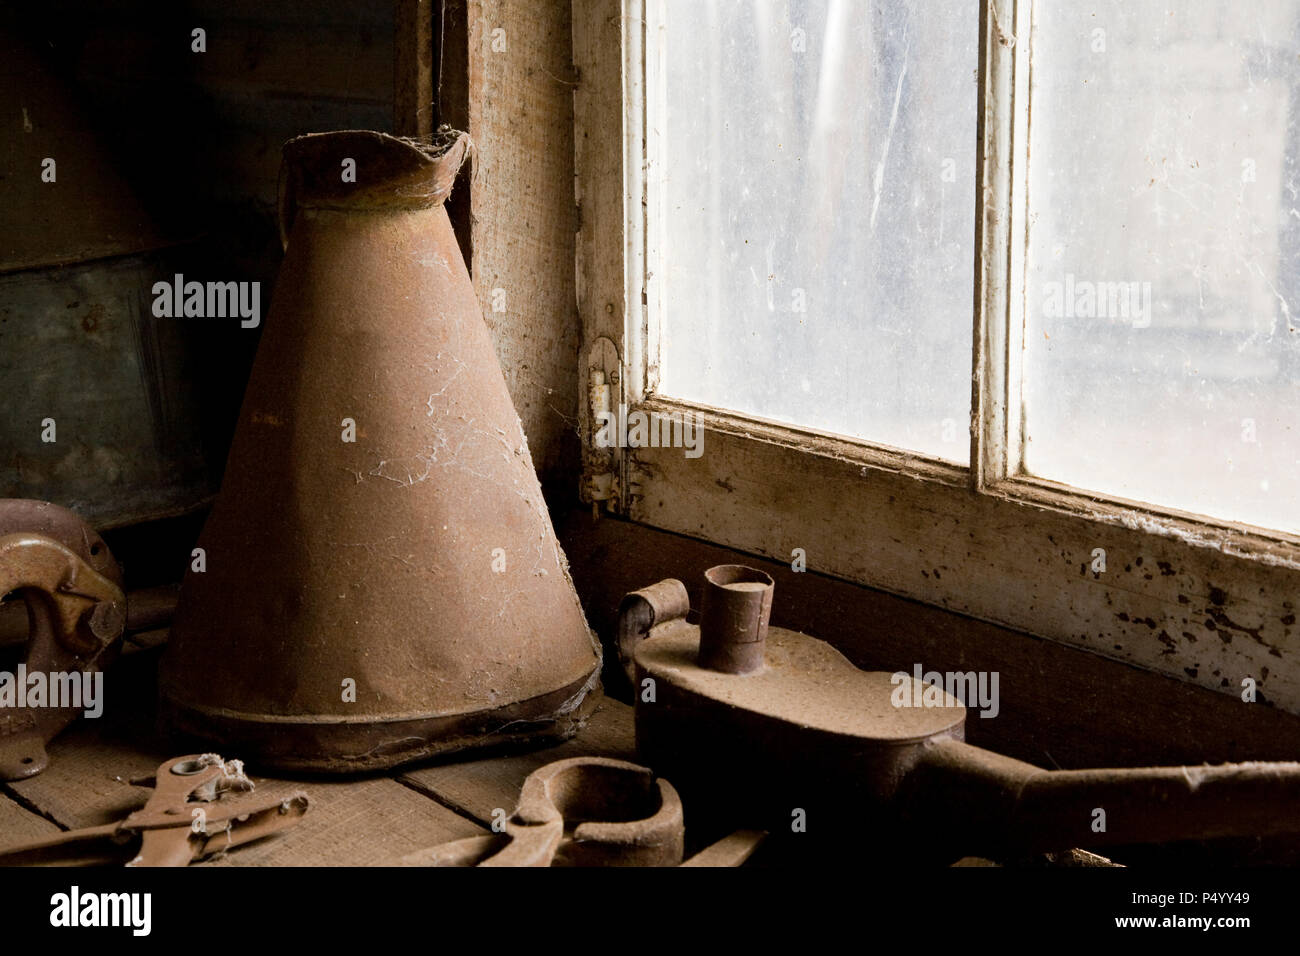 An old metallic ewer and antique tools in front of a workshop window. Stock Photo